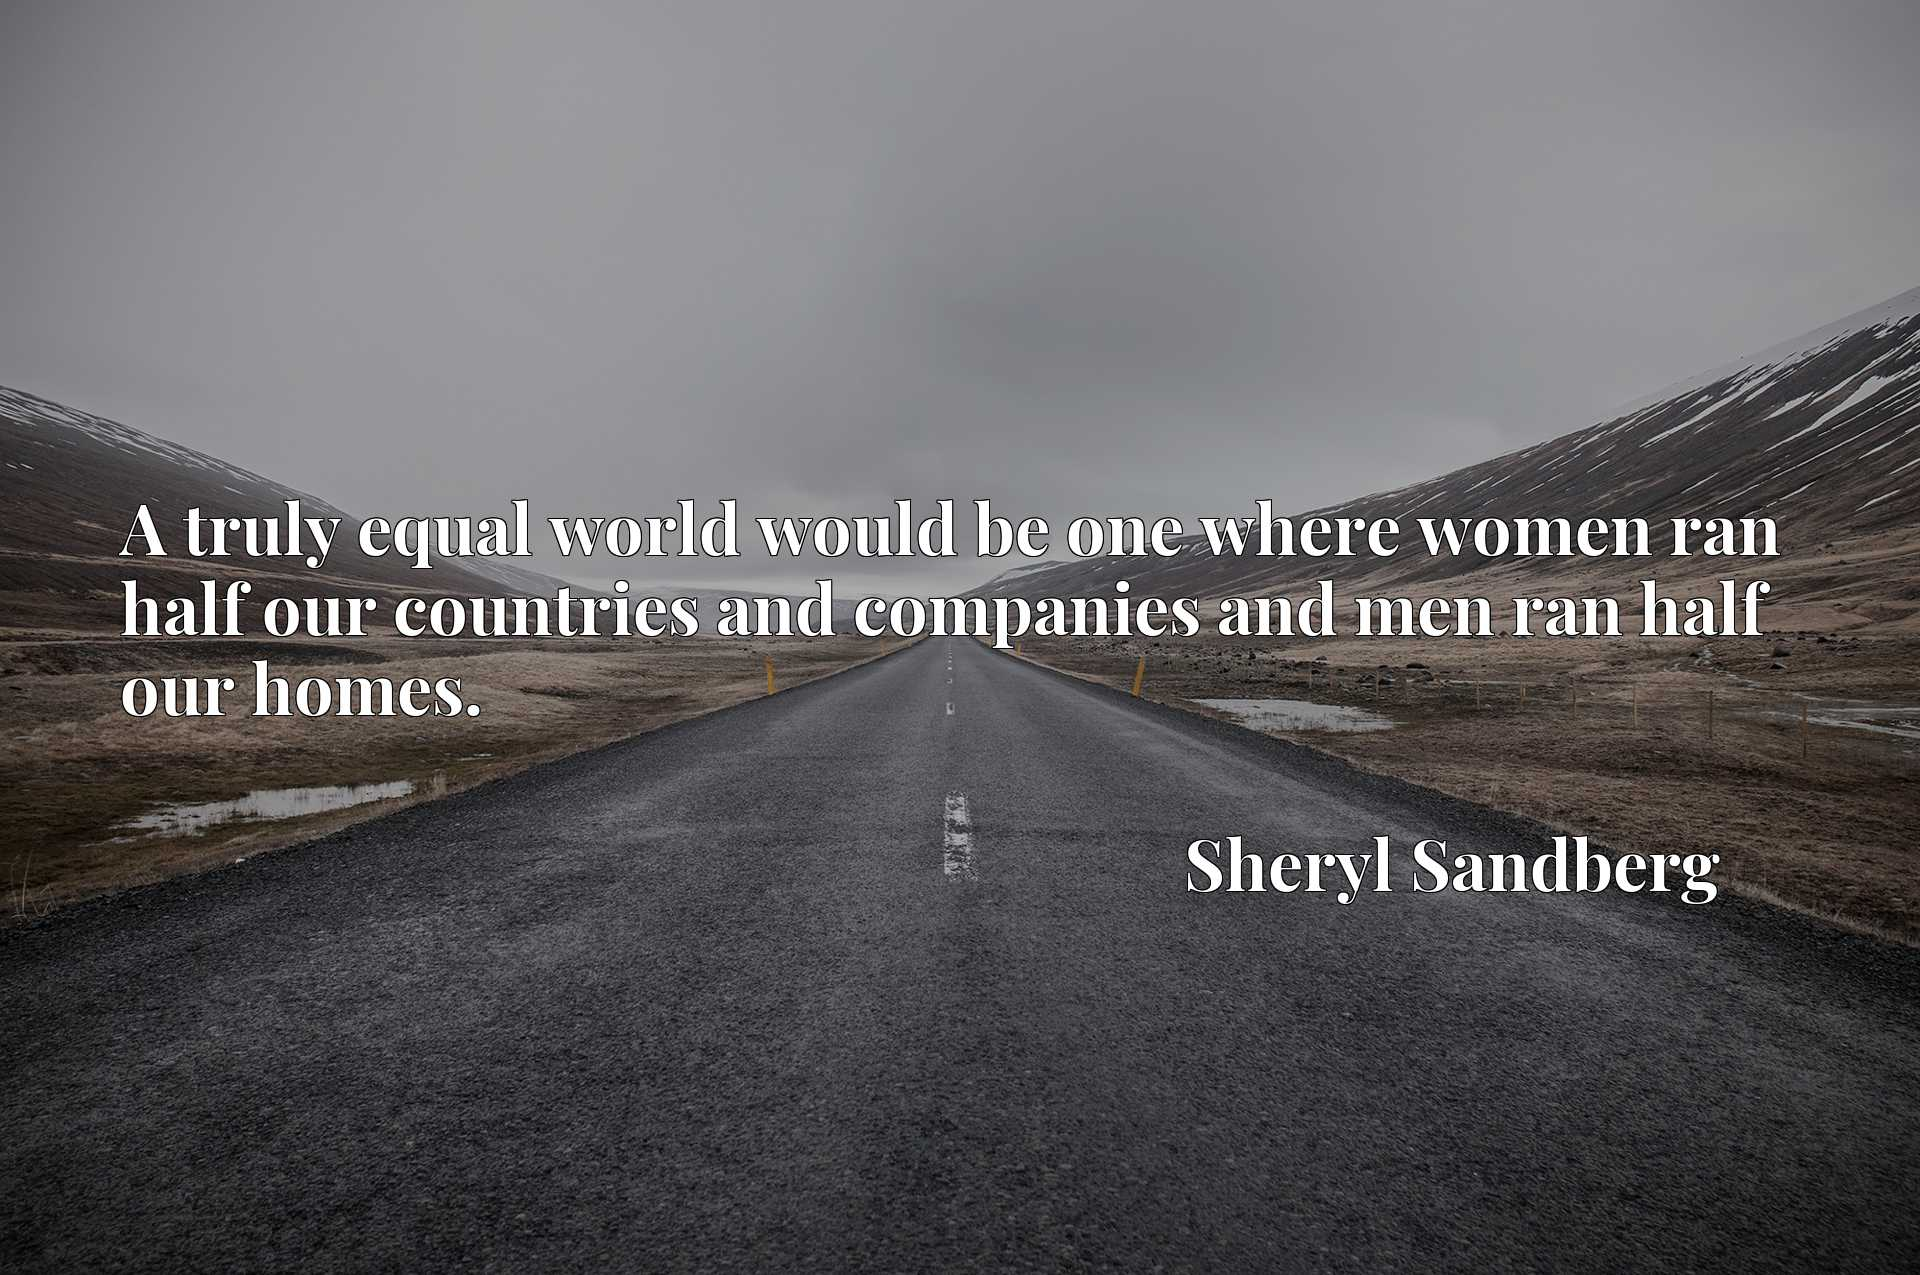 A truly equal world would be one where women ran half our countries and companies and men ran half our homes.